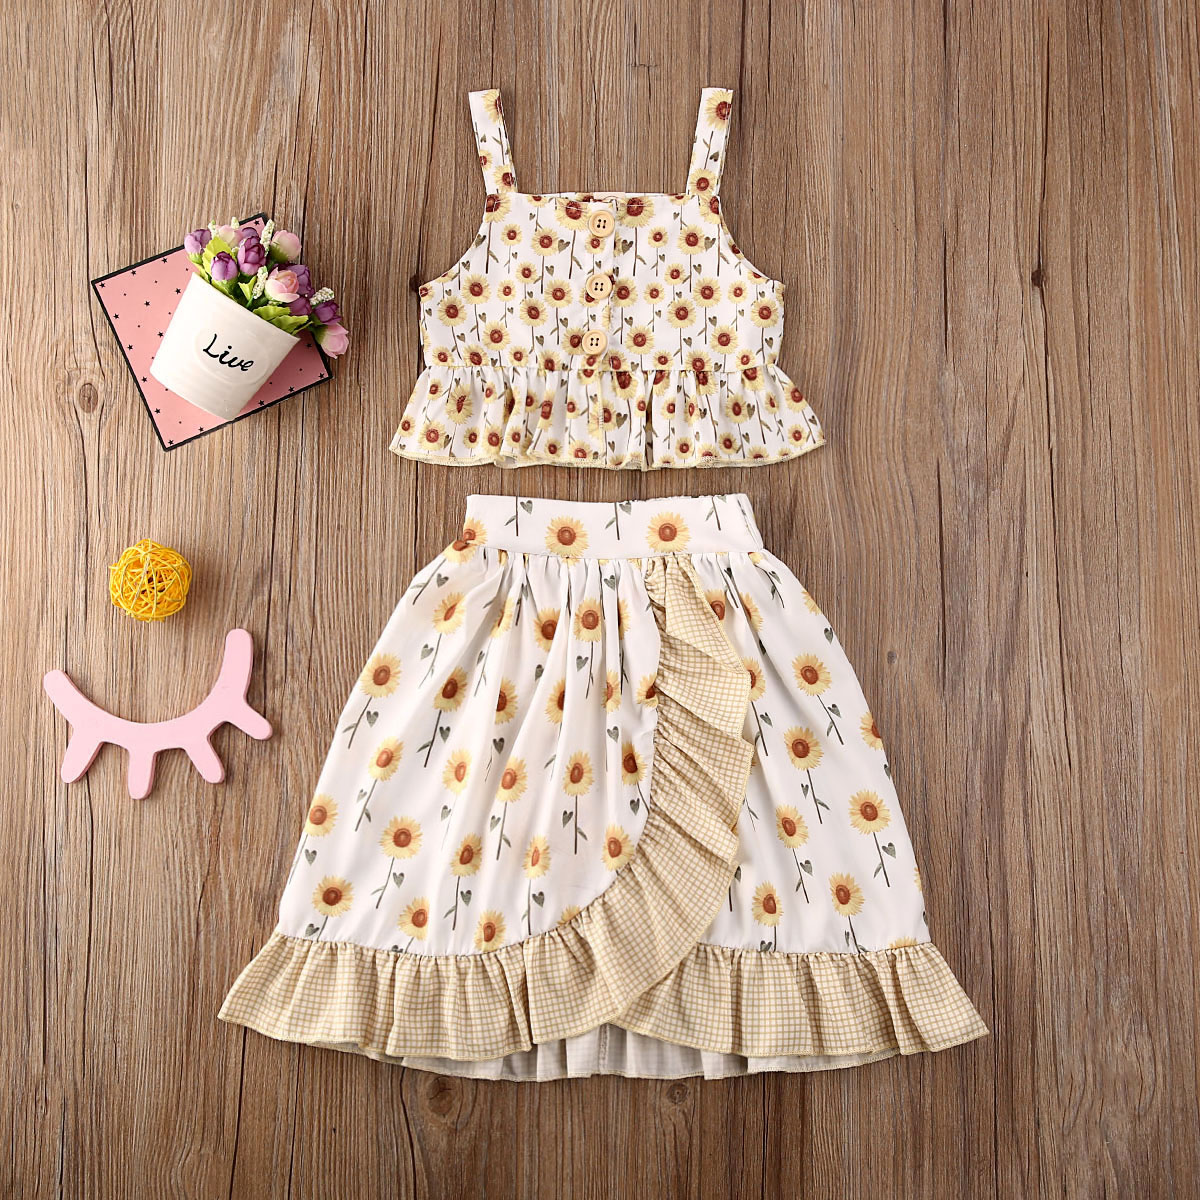 Pudcoco Toddler Baby Girl Clothes Sunflower Print Sleeveless Vest Tops Rufffle Skirt 2Pcs Outfits Cotton Clothes Summer Set